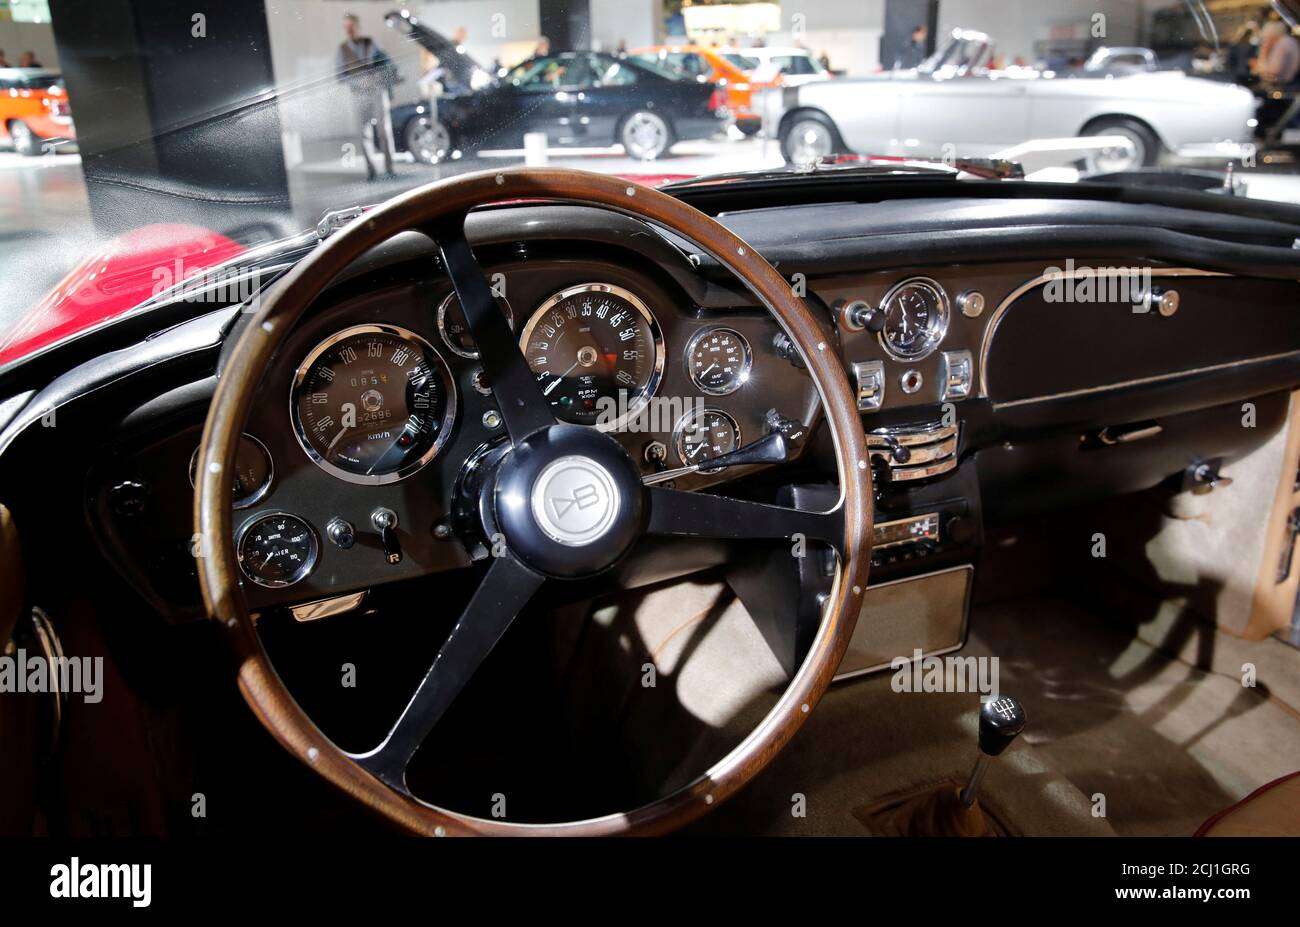 Aston Martin Dashboard High Resolution Stock Photography And Images Alamy